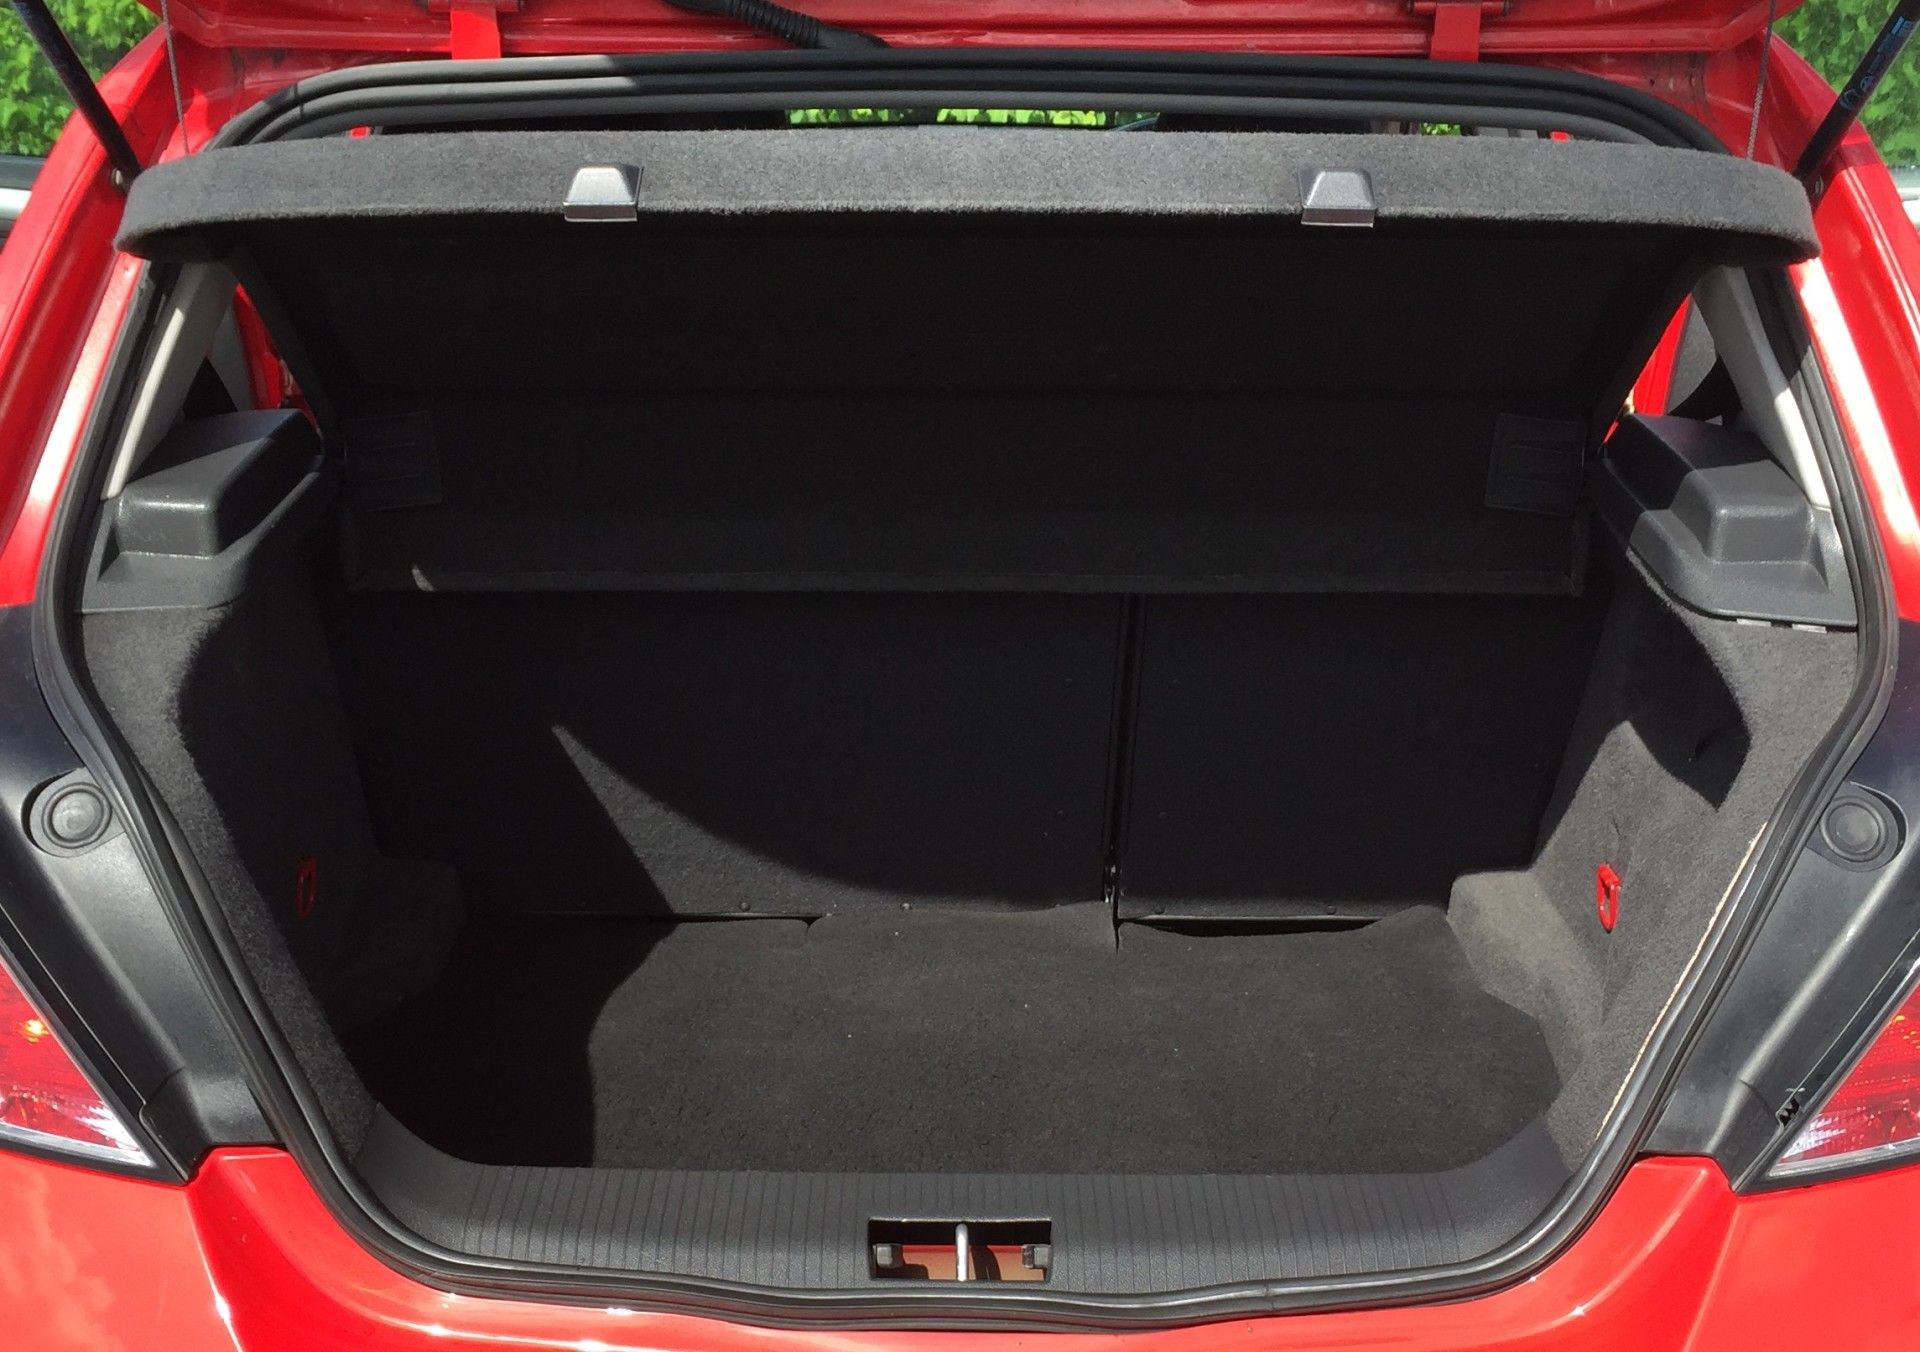 Great Boot Space